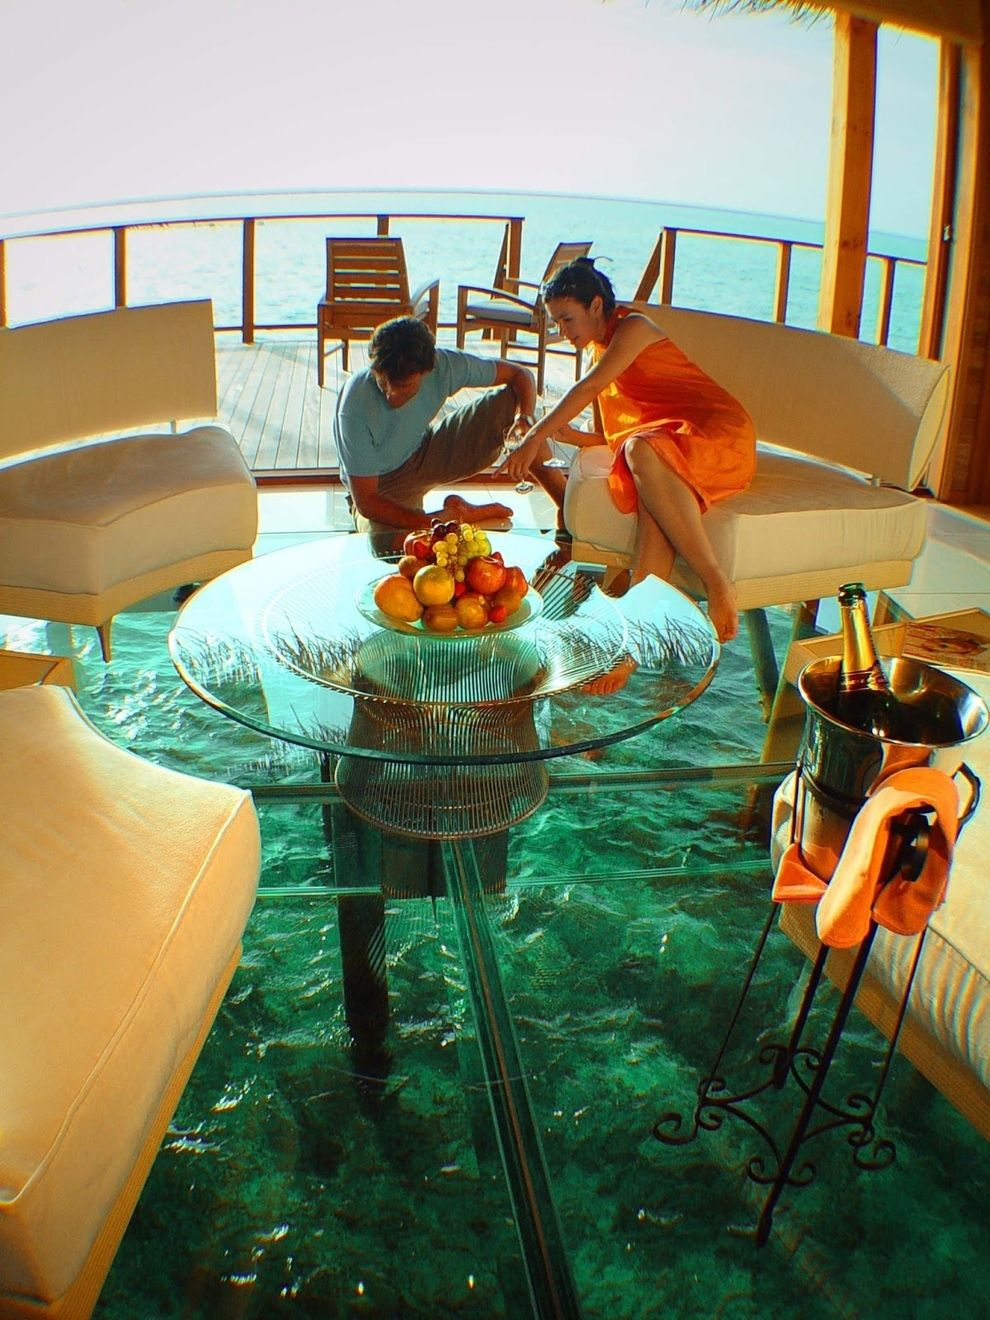 In this glass floor ocean cottage in the Maldives.